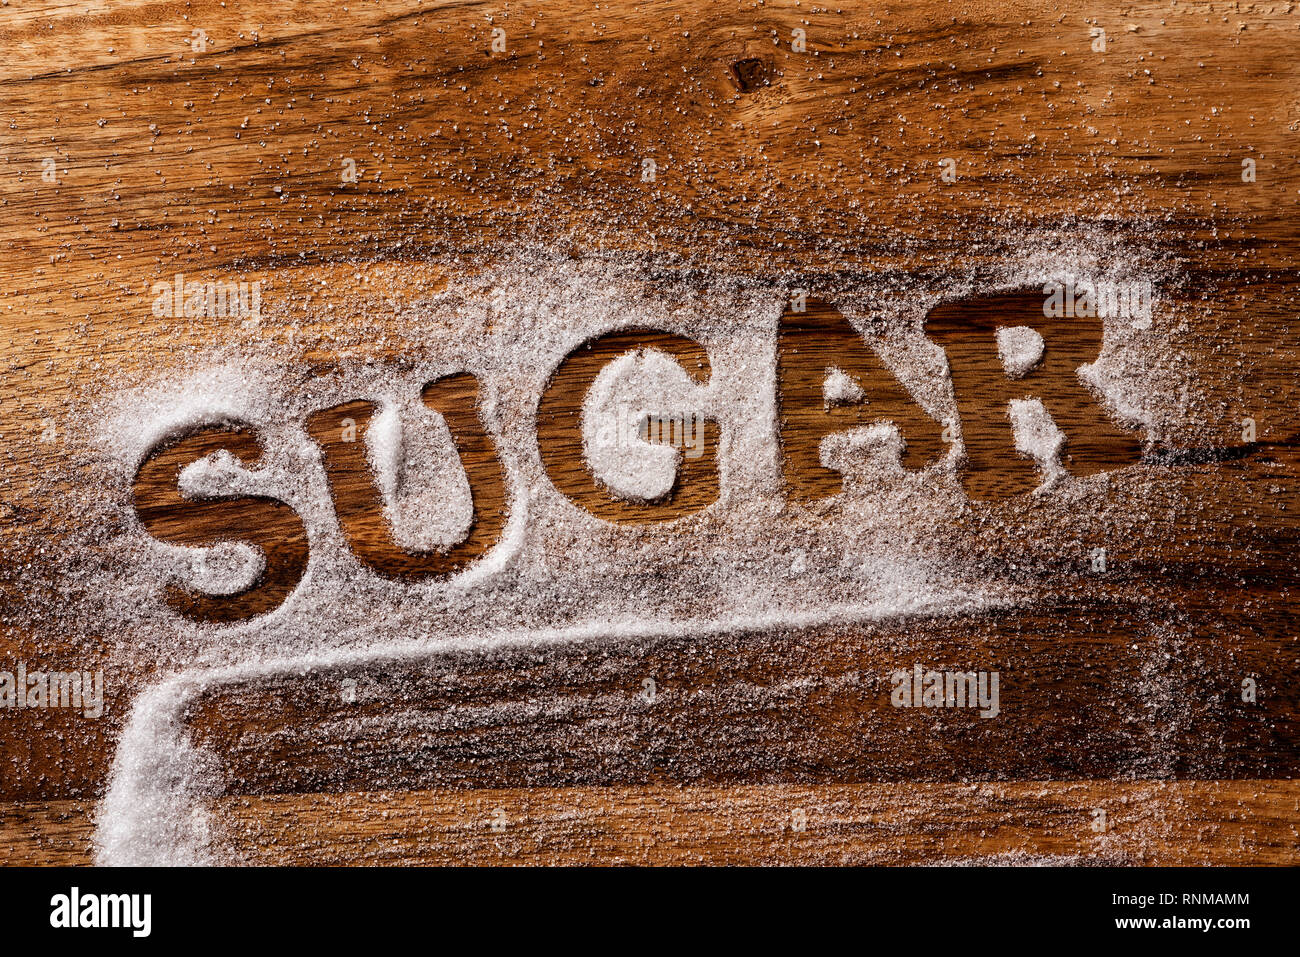 high angle view of a wooden table sprinkled with sugar where you can read the word sugar - Stock Image